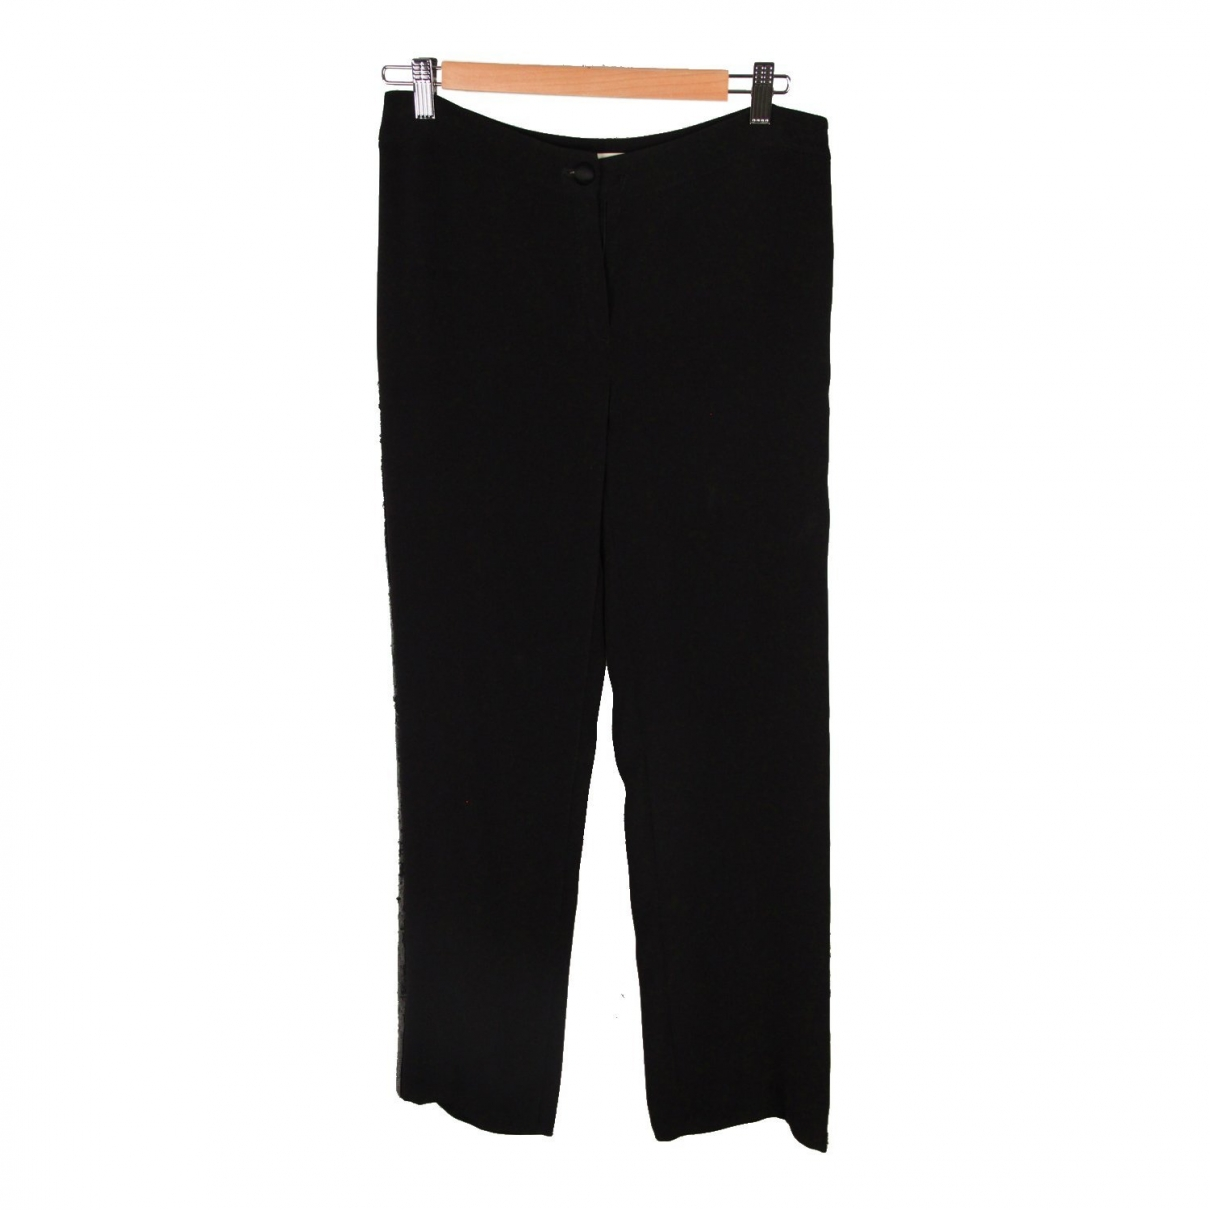 Valentino Garavani \N Trousers for Women S International